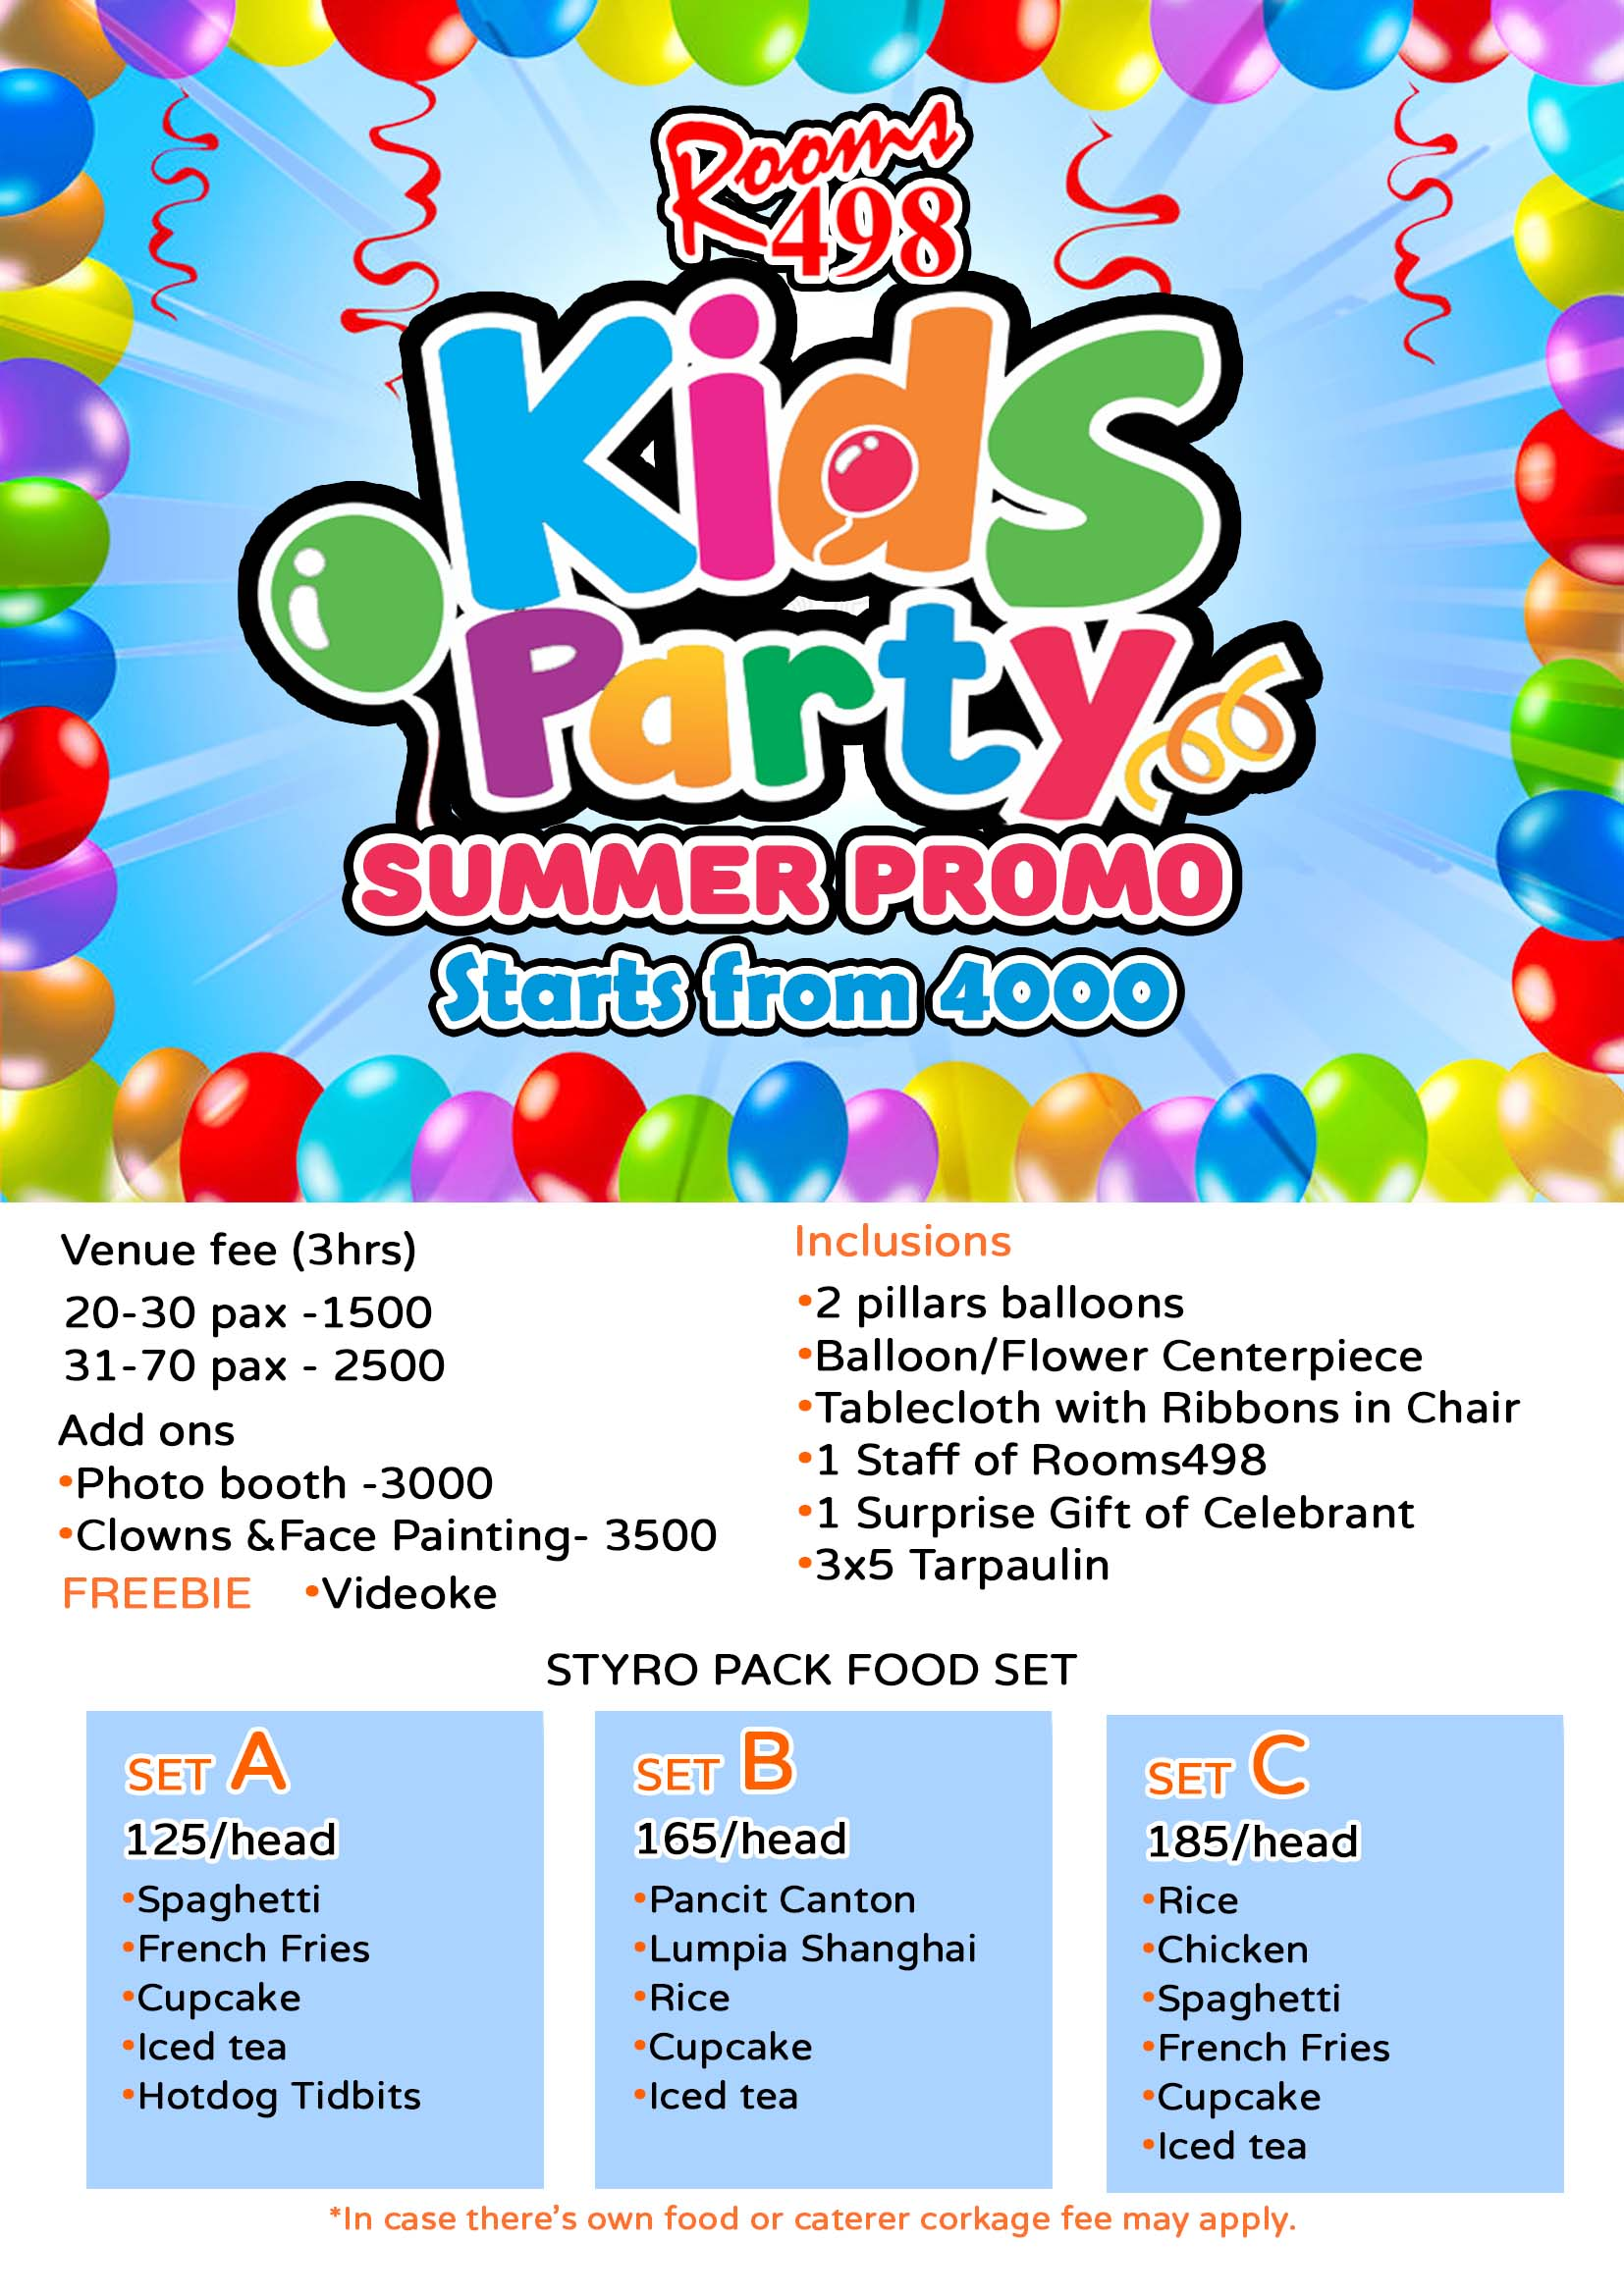 Super Affordable Kids Party Package, Children's Party, Princess themed Party, Barney themed party, Spider man themed Party, Cars themed Party, party supplies, Party Packages, Kids party Entertainment, clowns, magician Face painting.